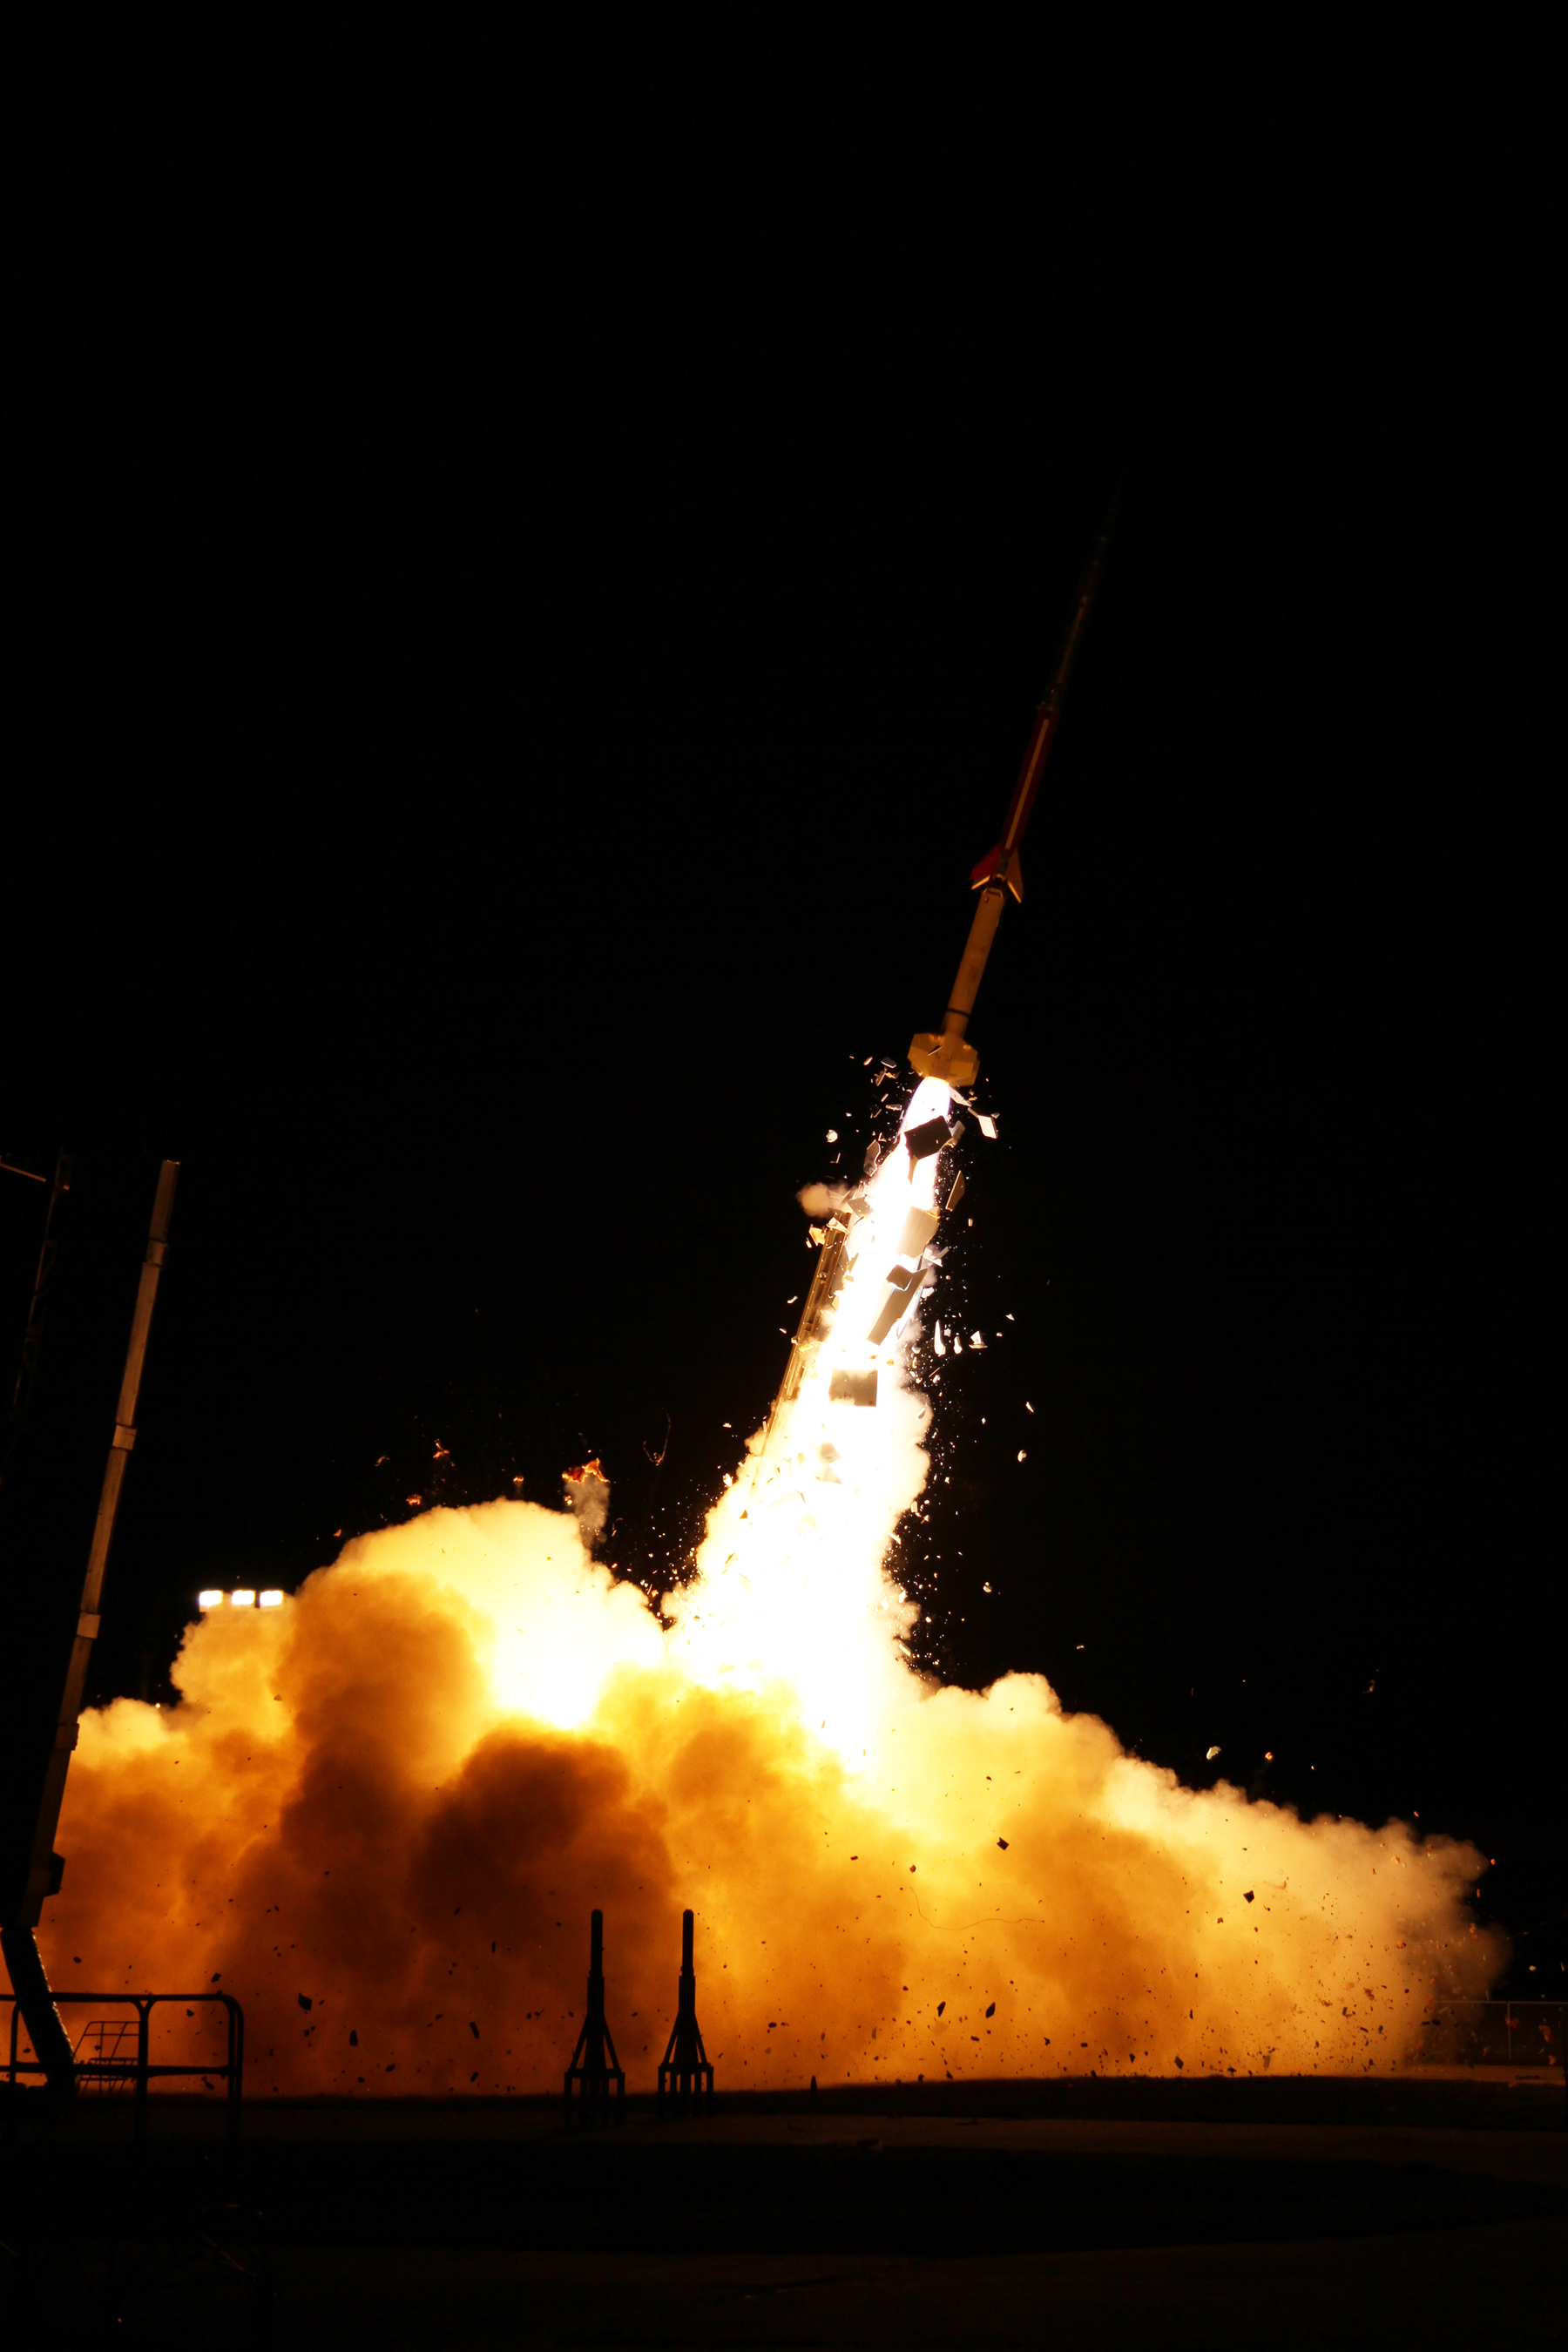 NASA Launches ATREX Rocket: March 27, 2012